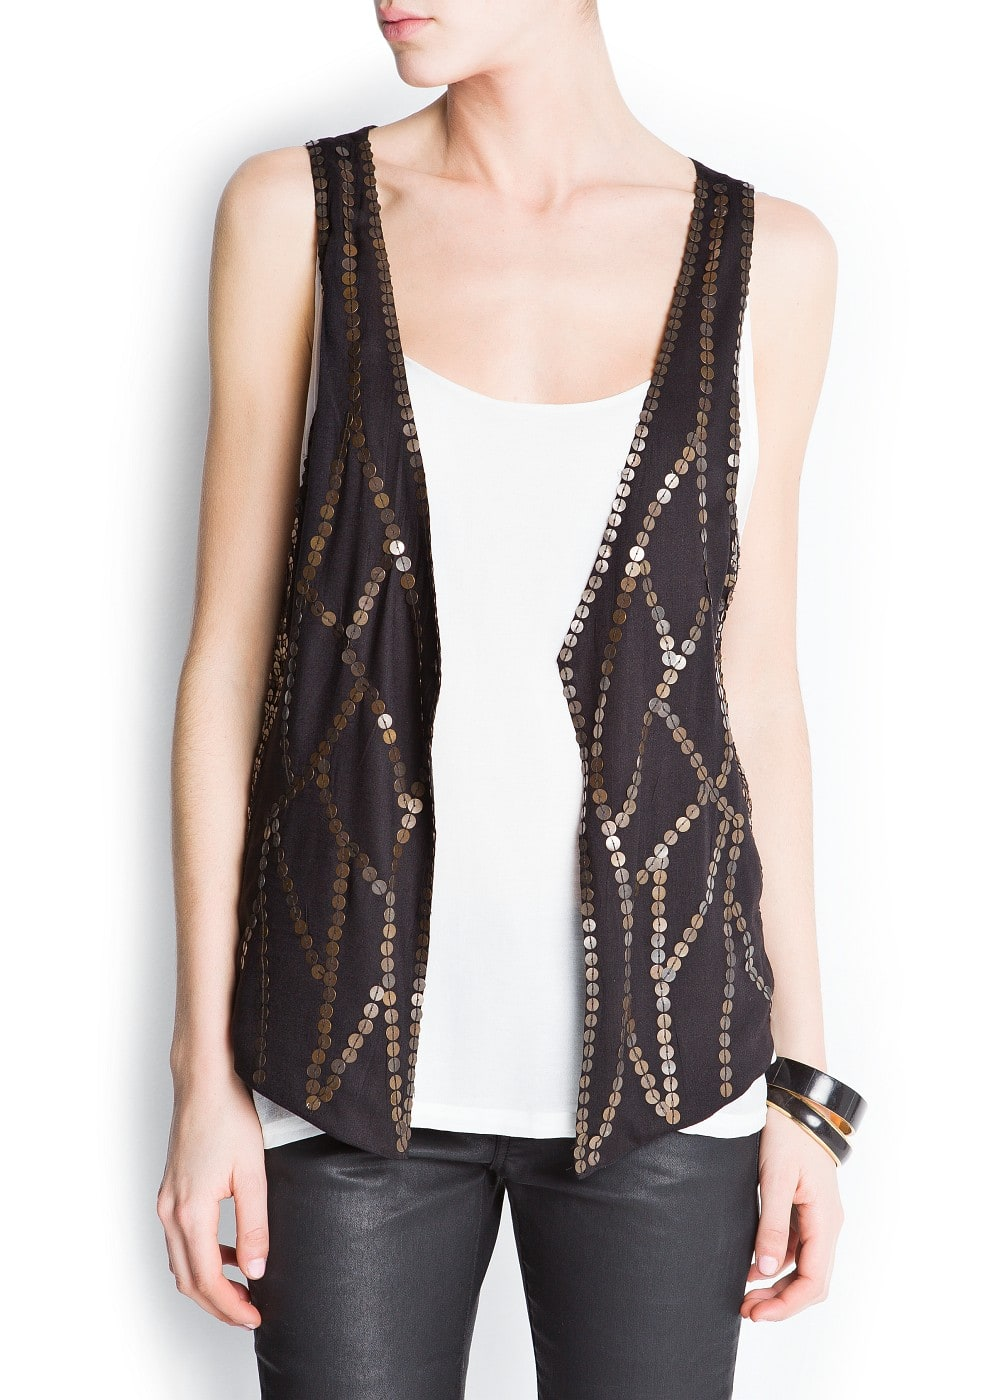 Metal embellished vest